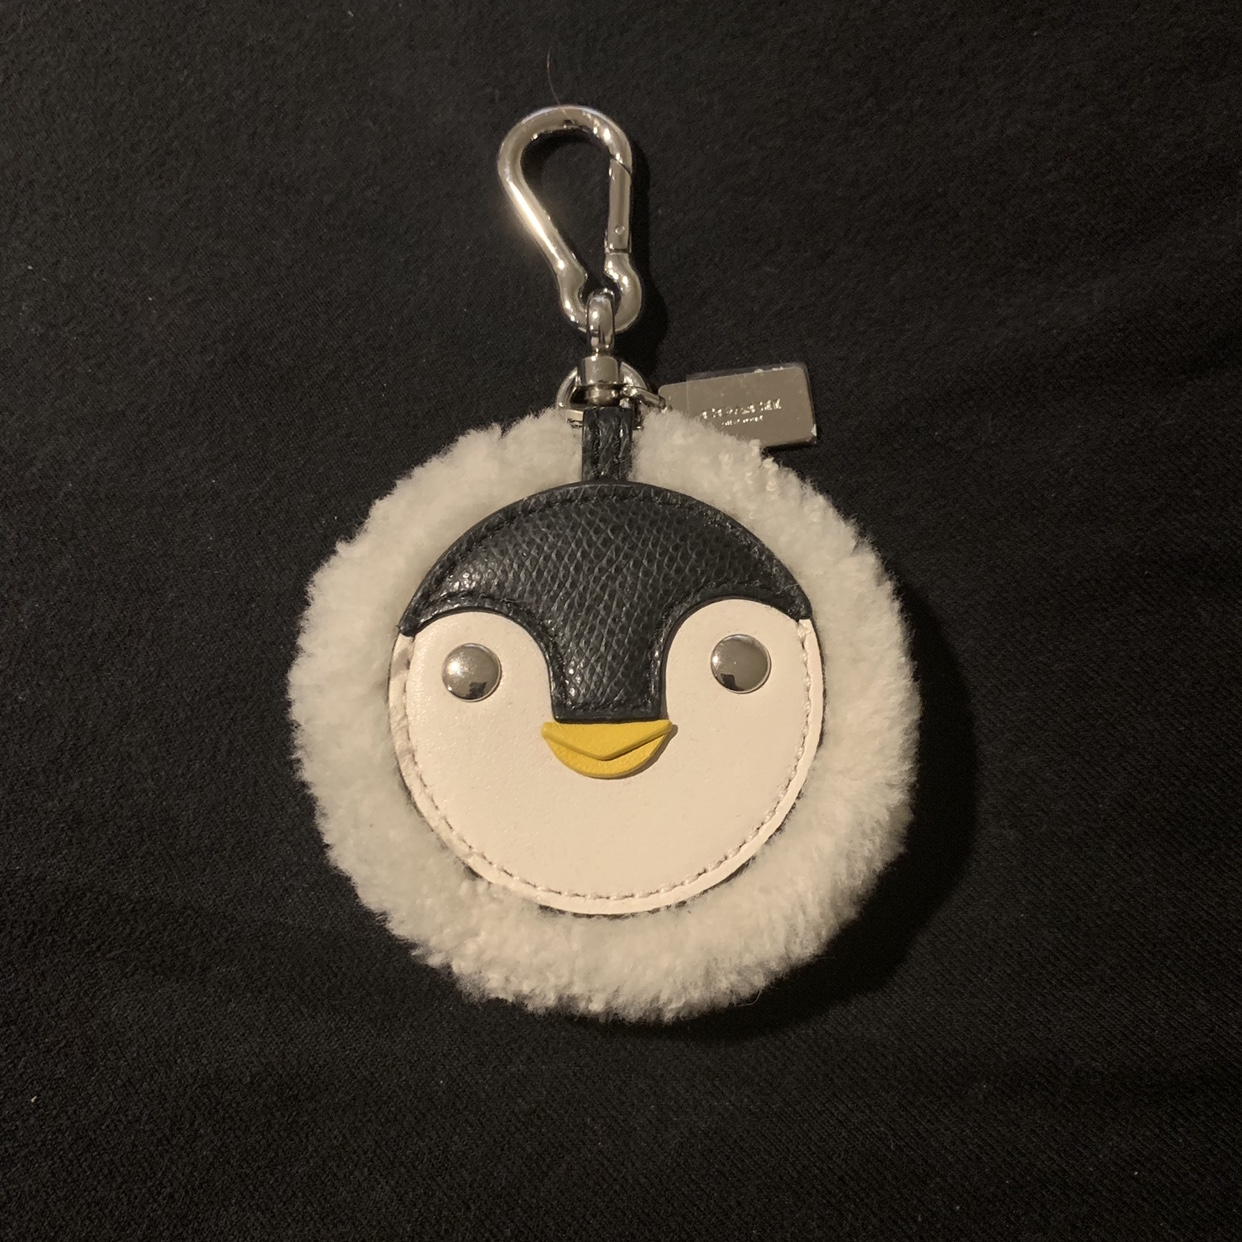 Adorable Fuzzy Penguin Keychain From Coach Never Depop